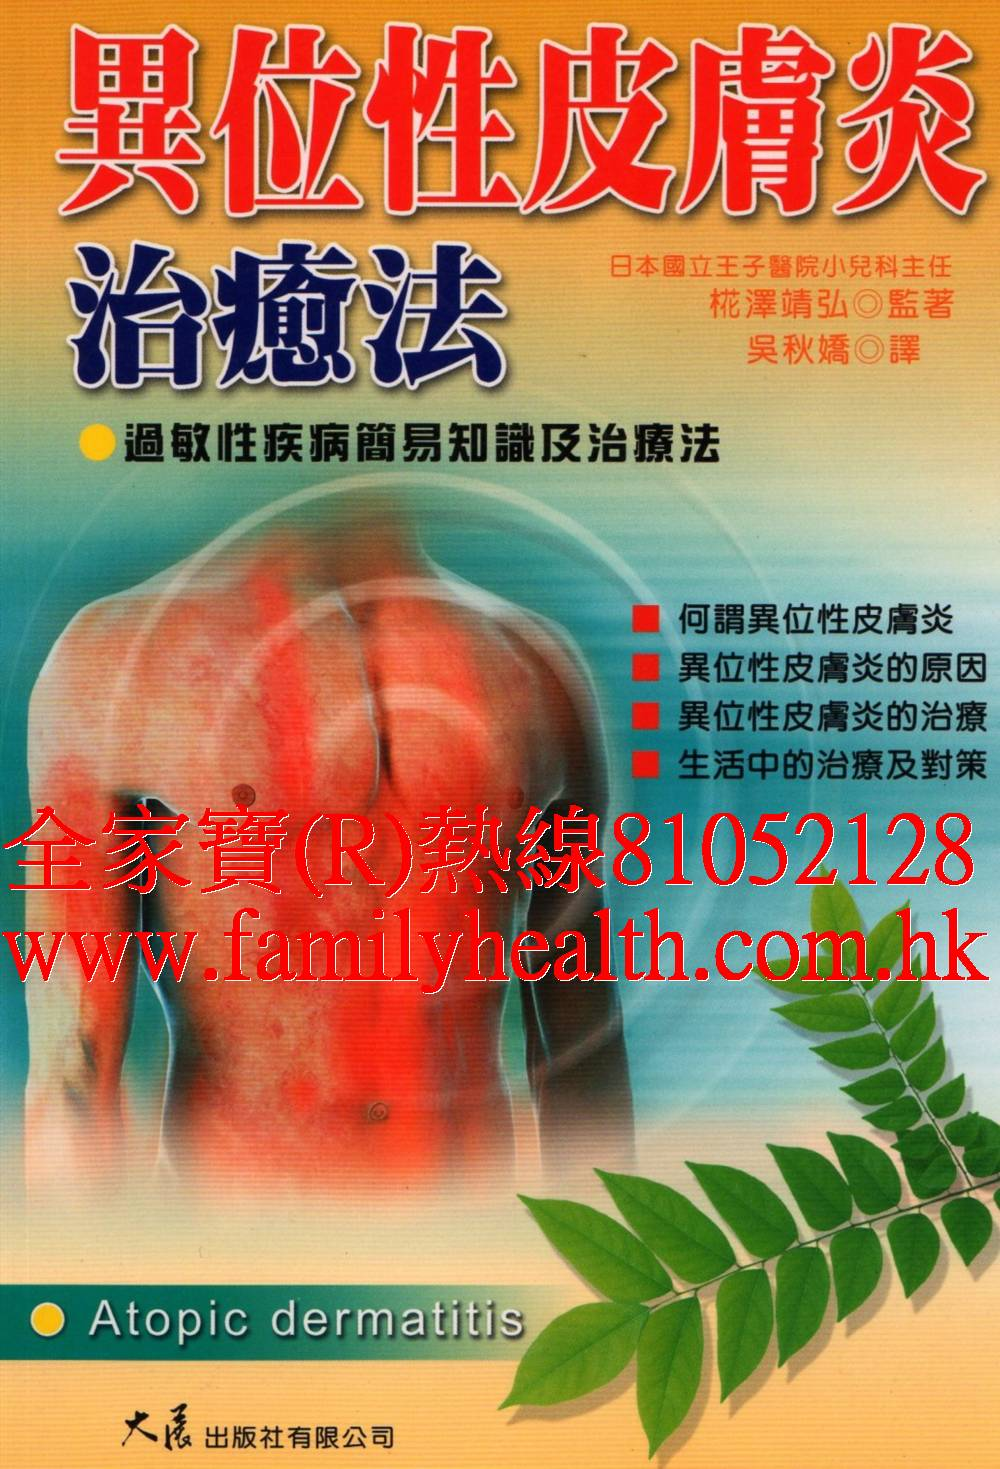 http://www.familyhealth.com.hk/files/full/921_0.jpg